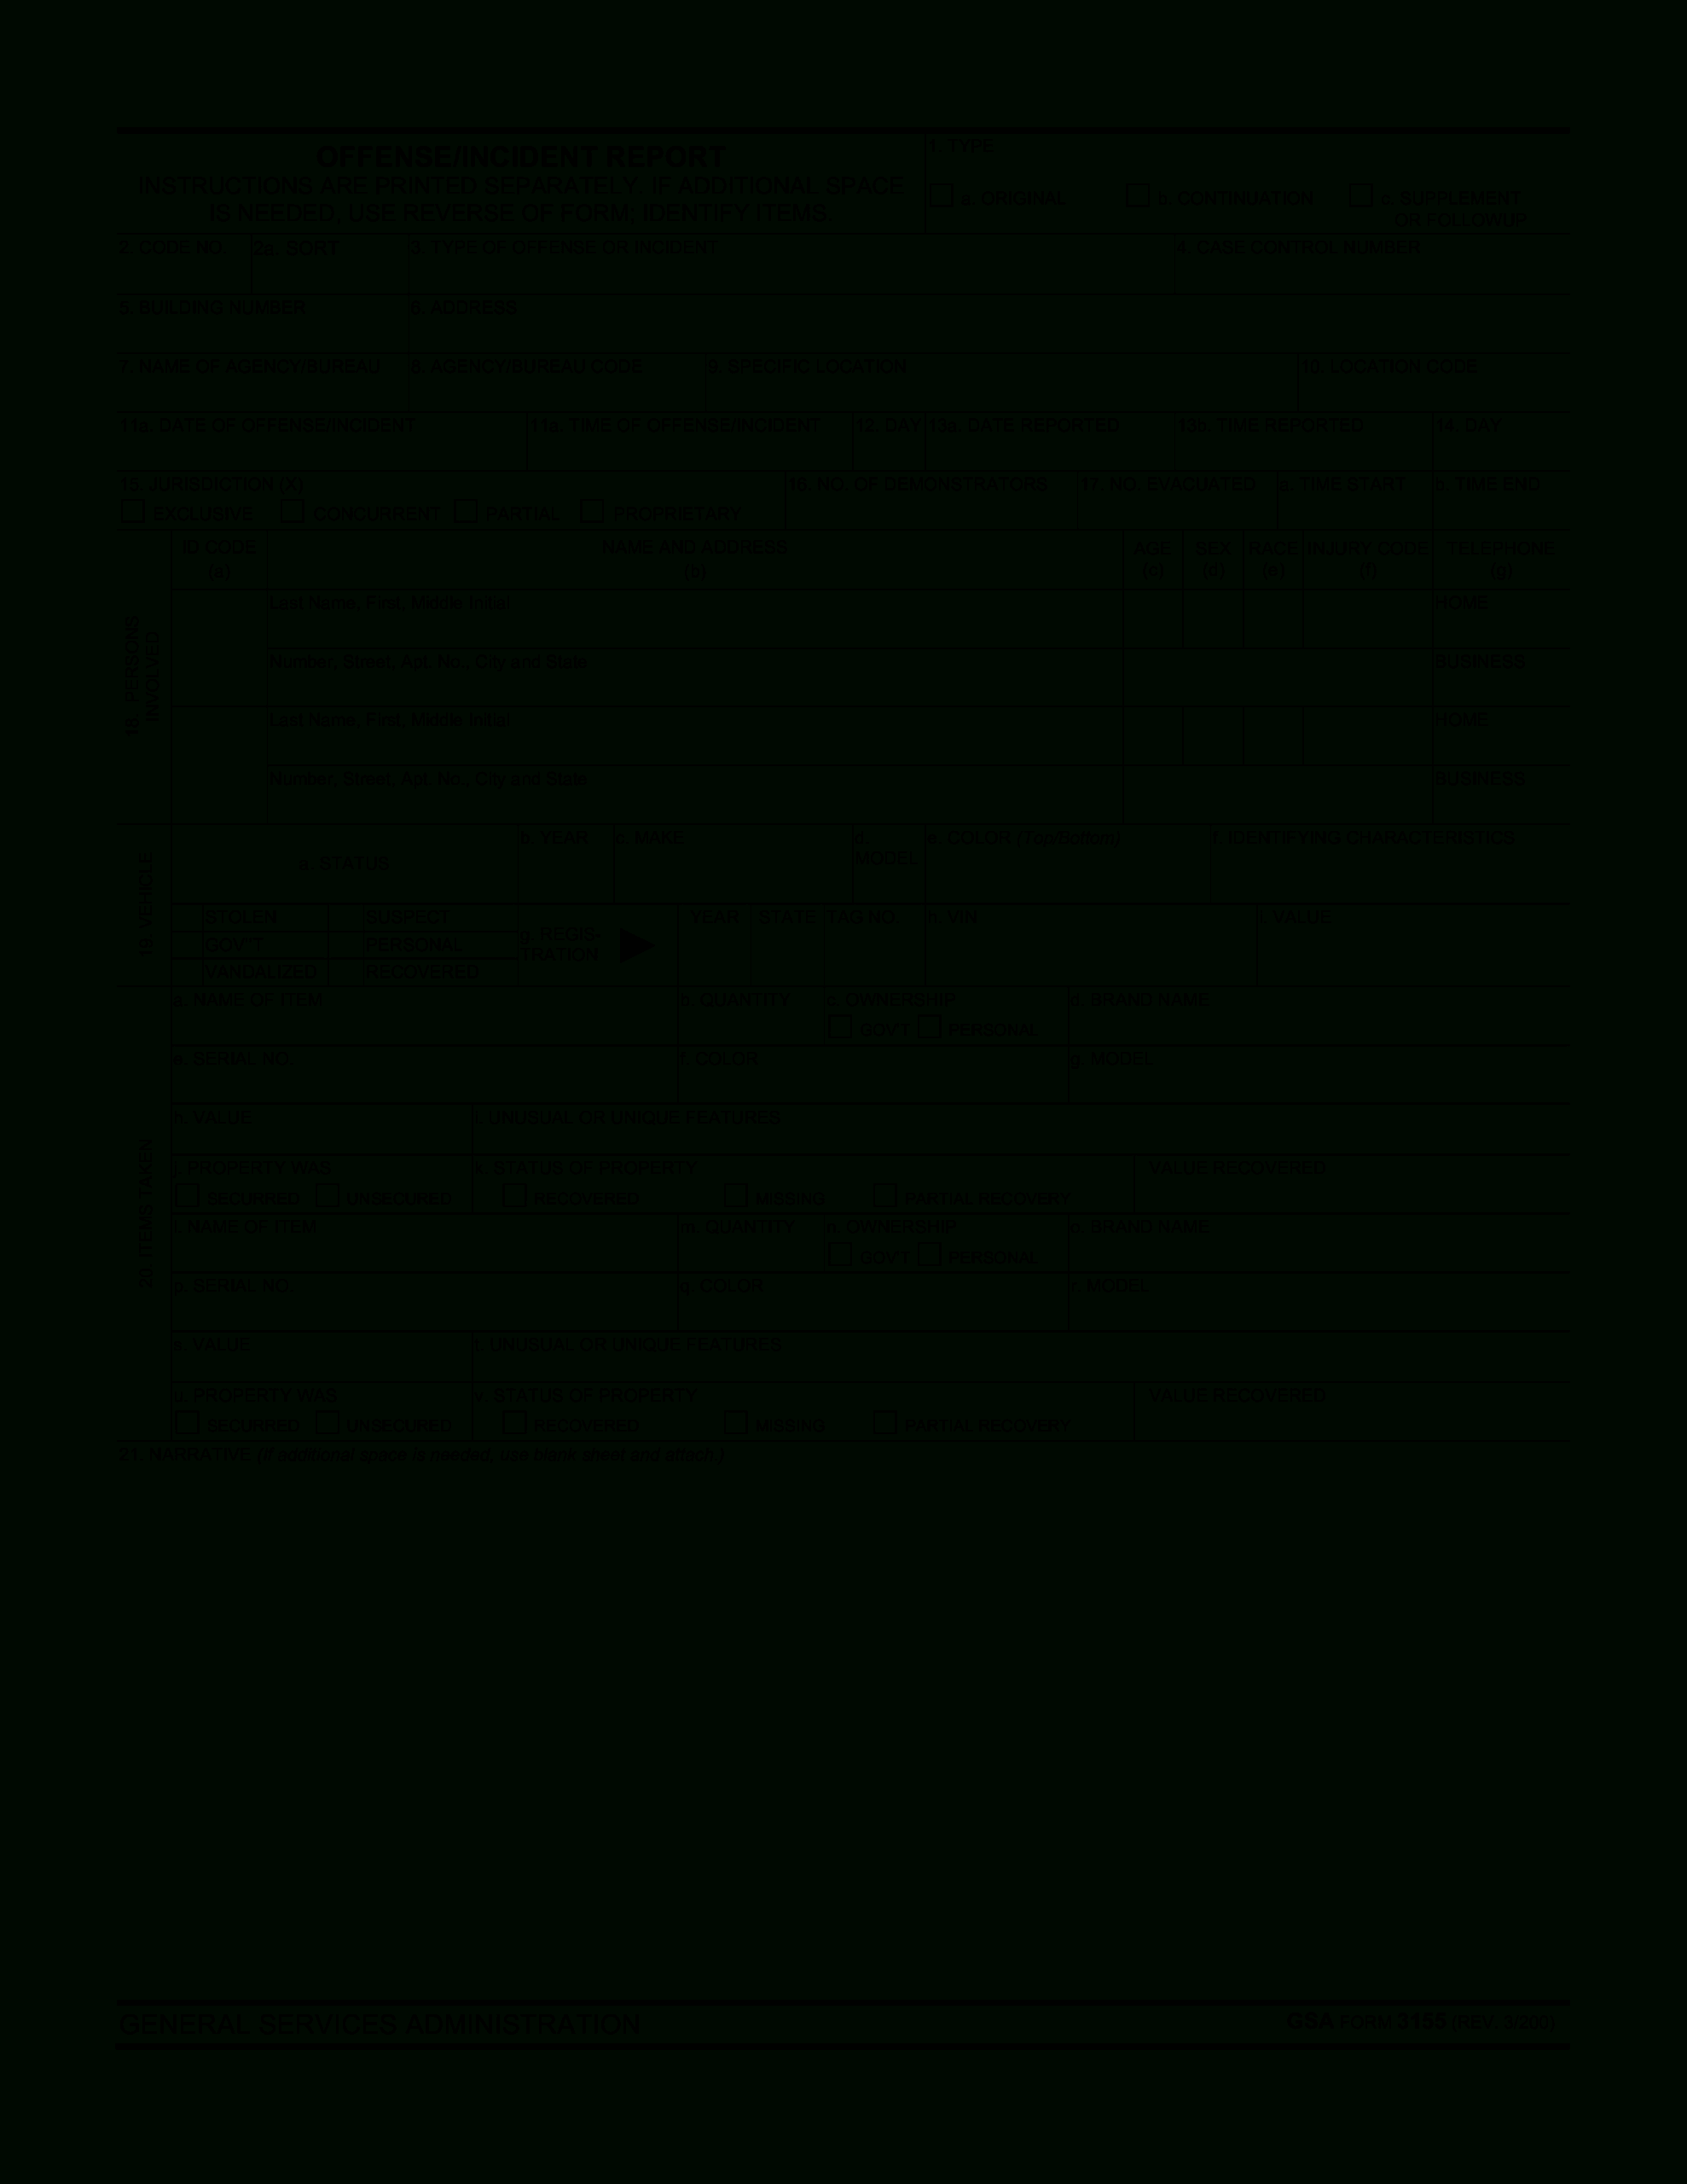 Blank Police Report Template | Templates At Within Blank Police Report Template